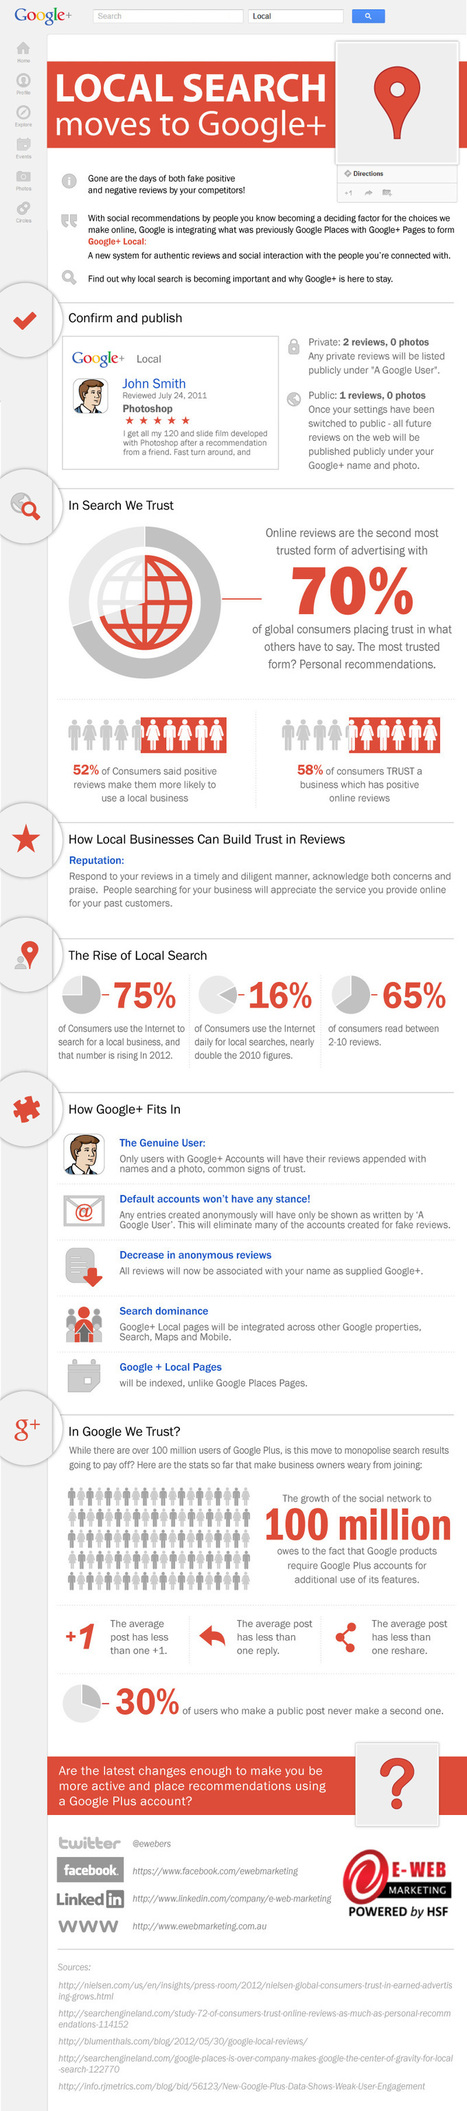 Local search moves to Google+ | Local Search Marketing | Scoop.it